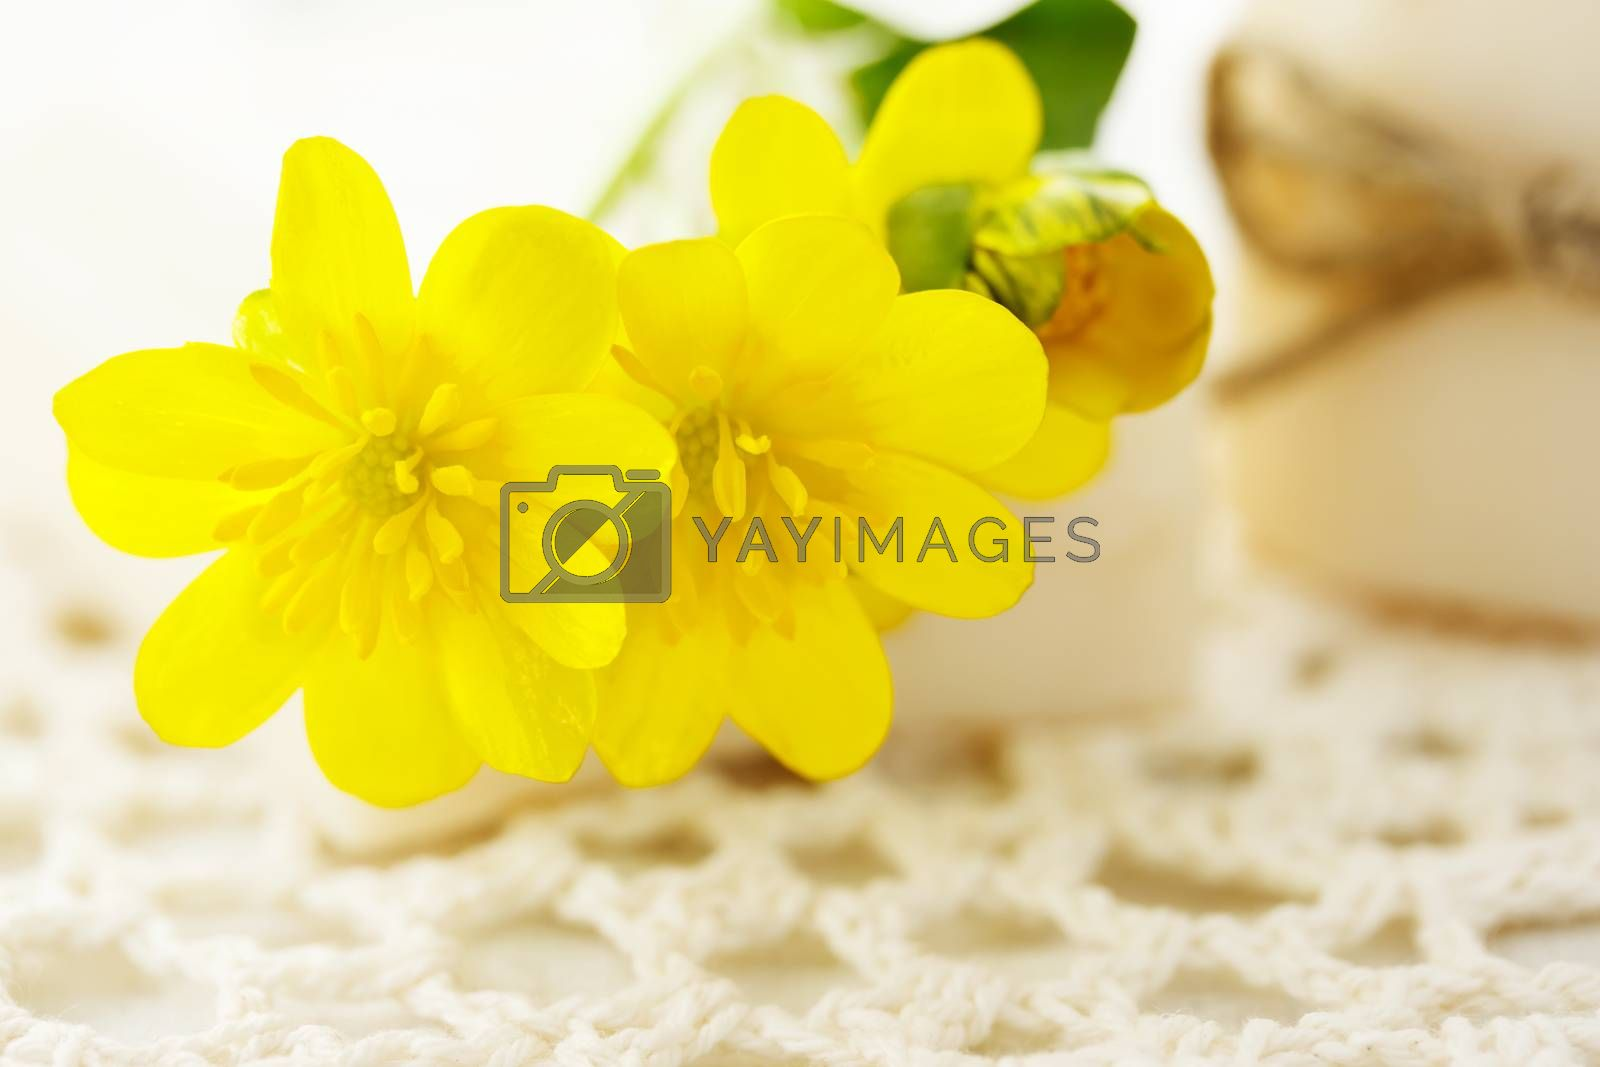 Royalty free image of Yellow flowers with bars of soap by melpomene